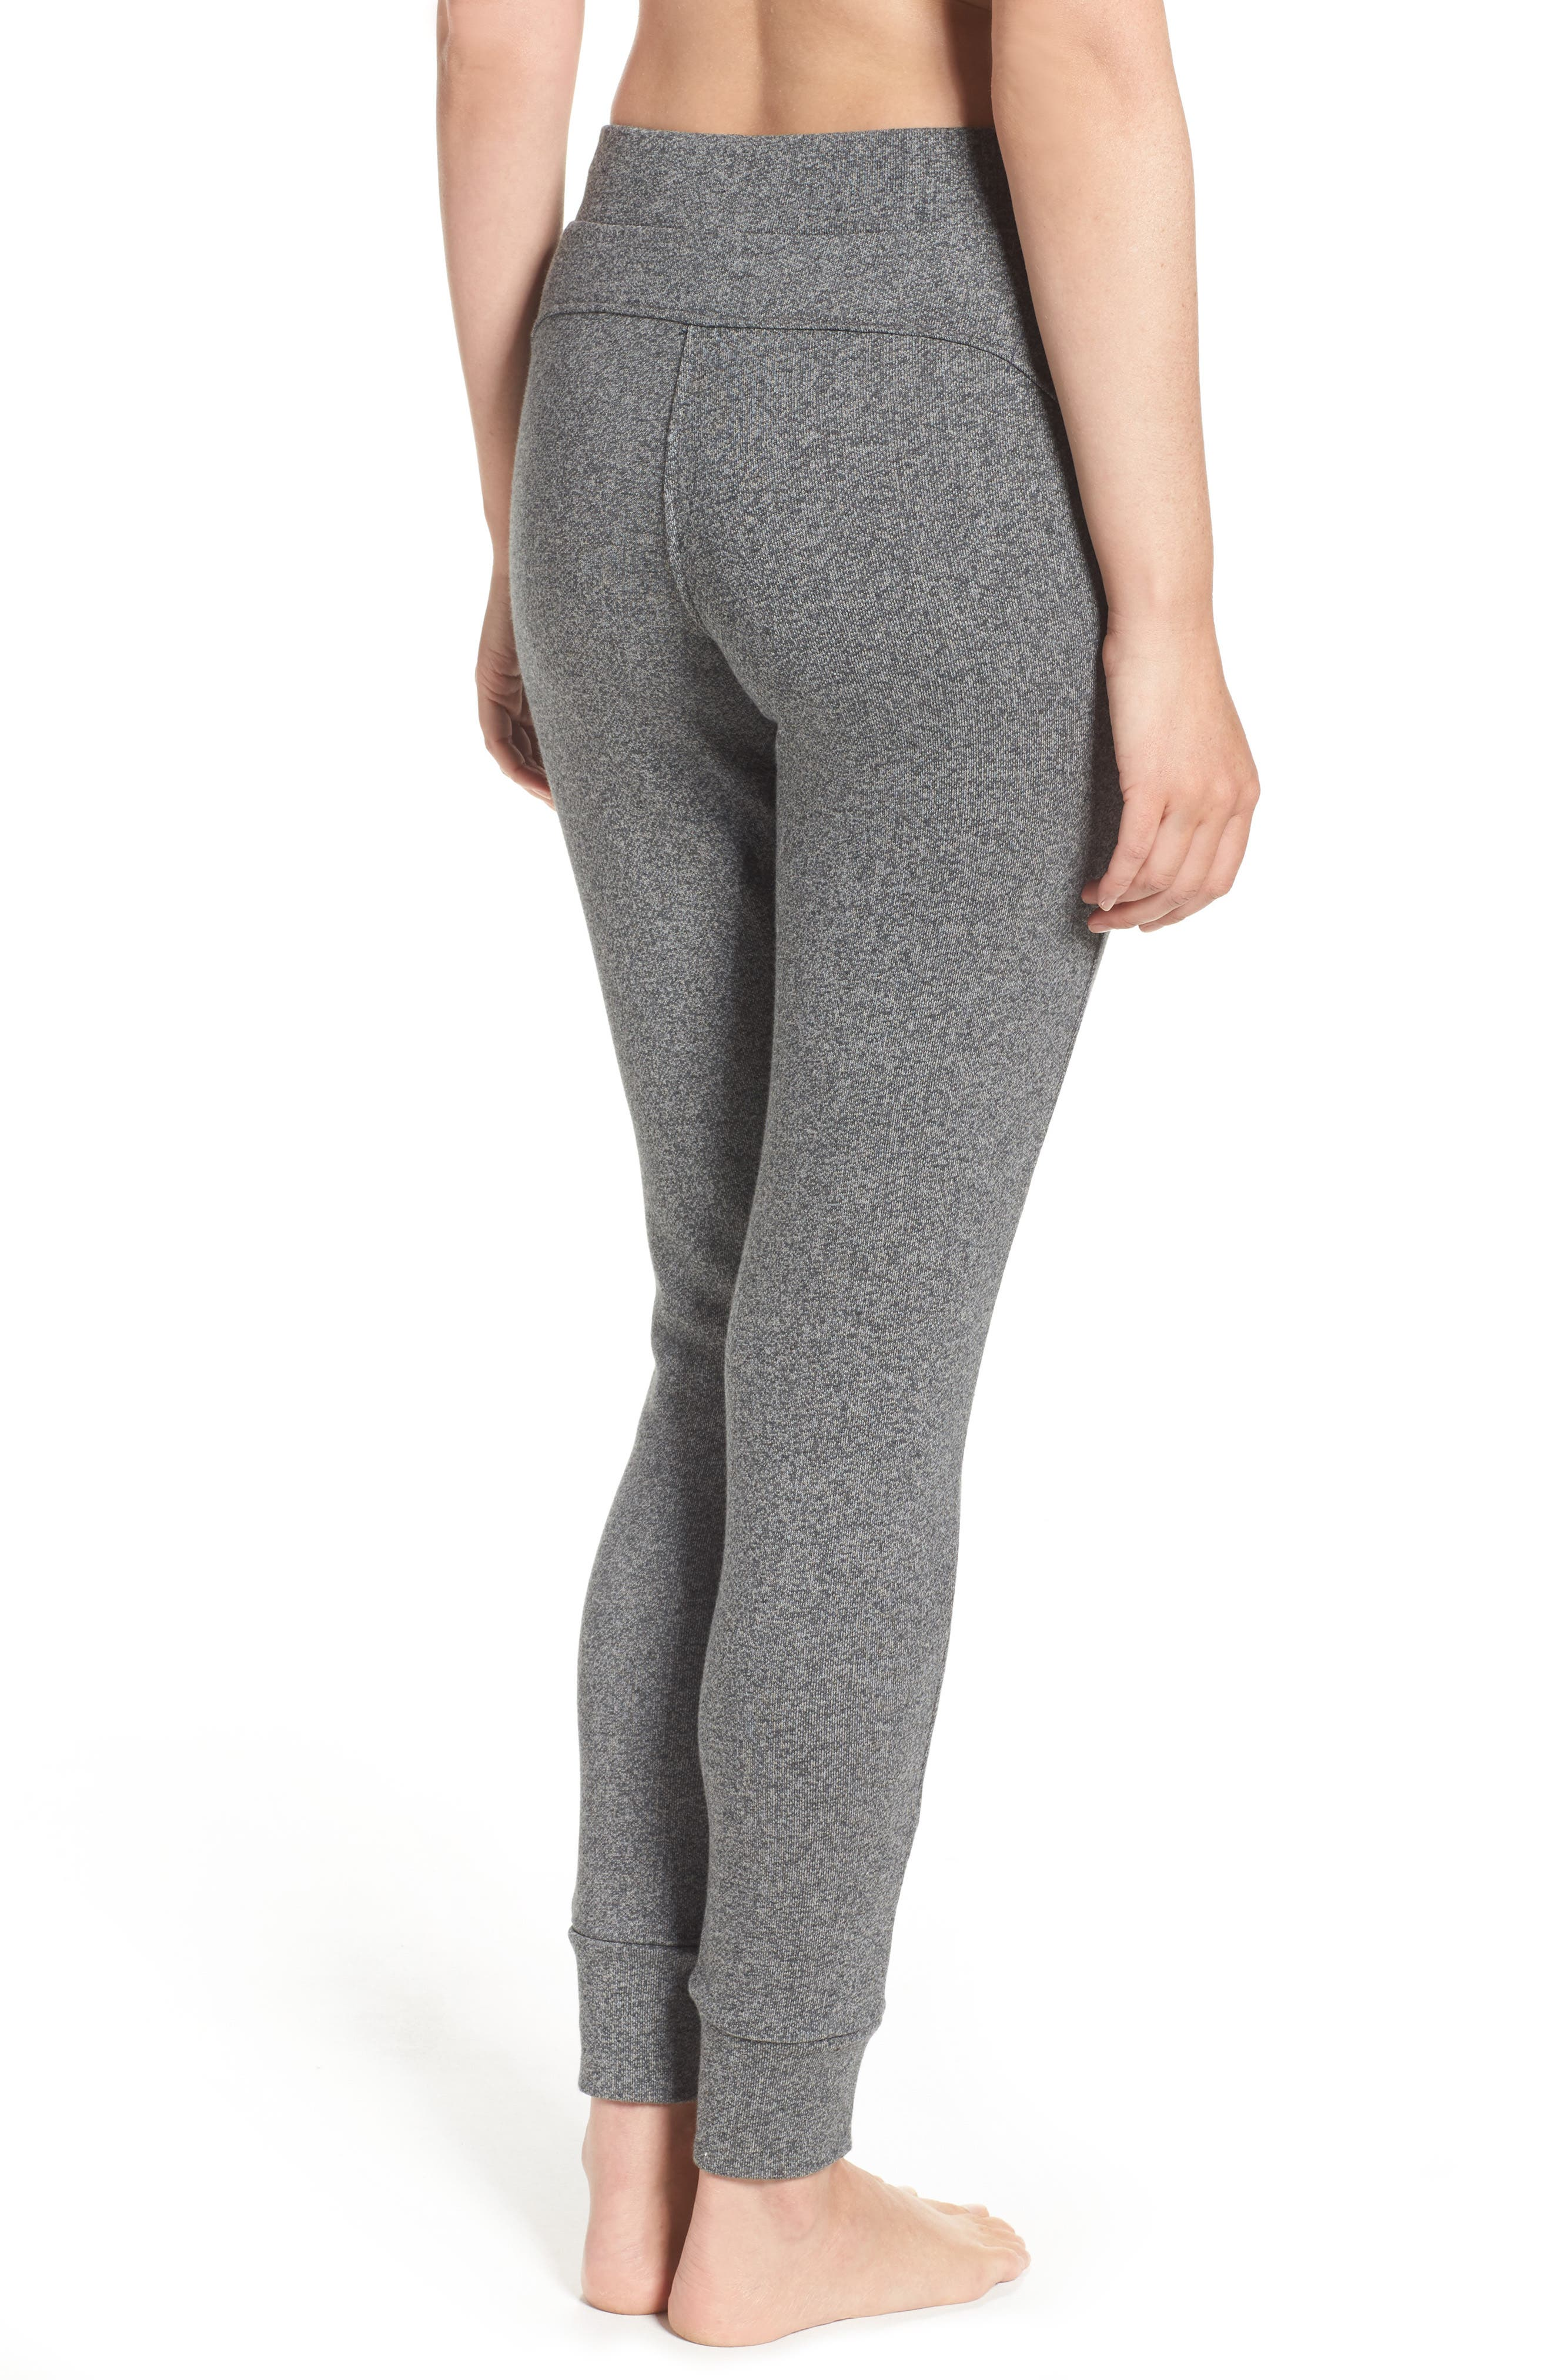 Clementine Terrry Sweatpants,                             Alternate thumbnail 2, color,                             Charcoal Heather